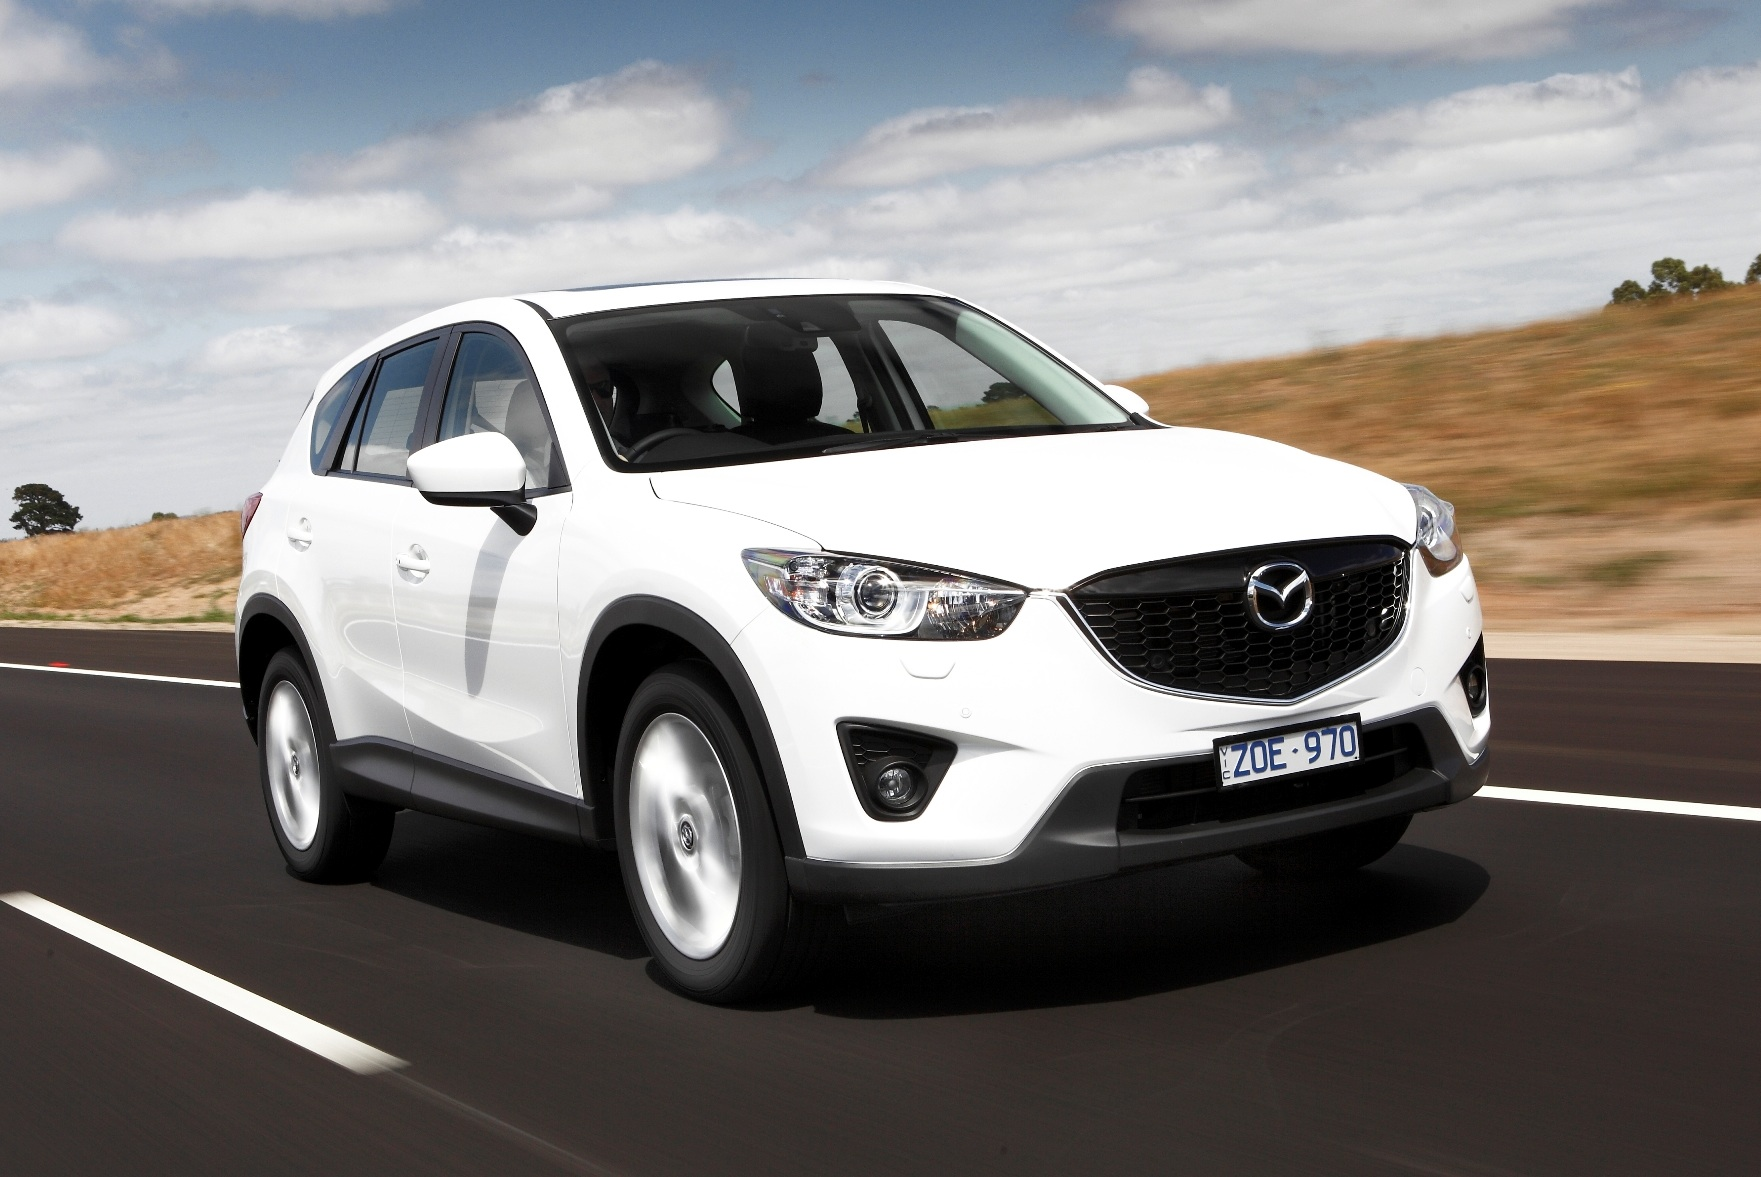 Mazda-CX-5-front-side-driving